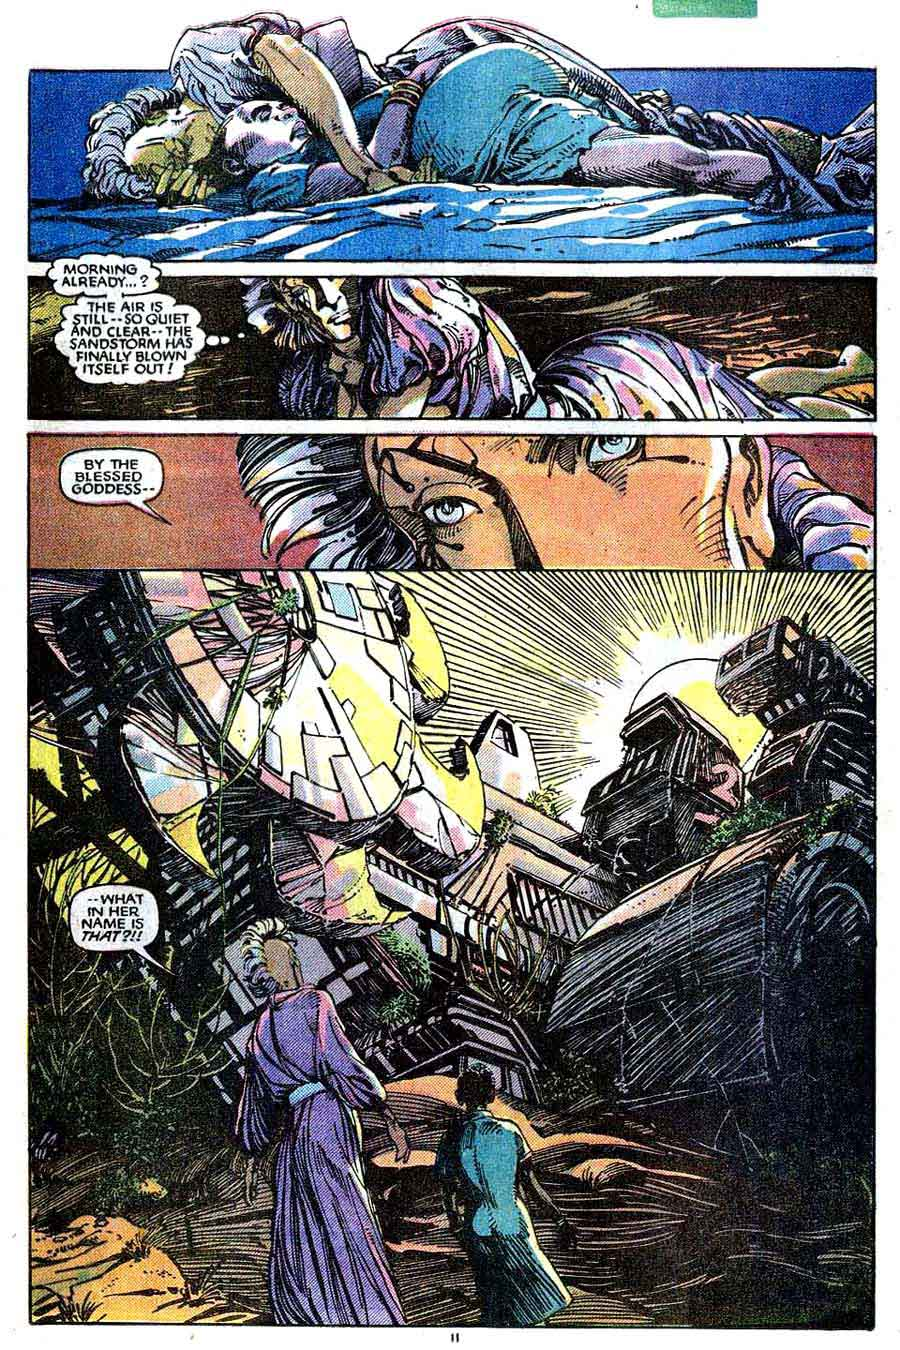 X-men v1 #198 marvel comic book page art by Barry Windsor Smith